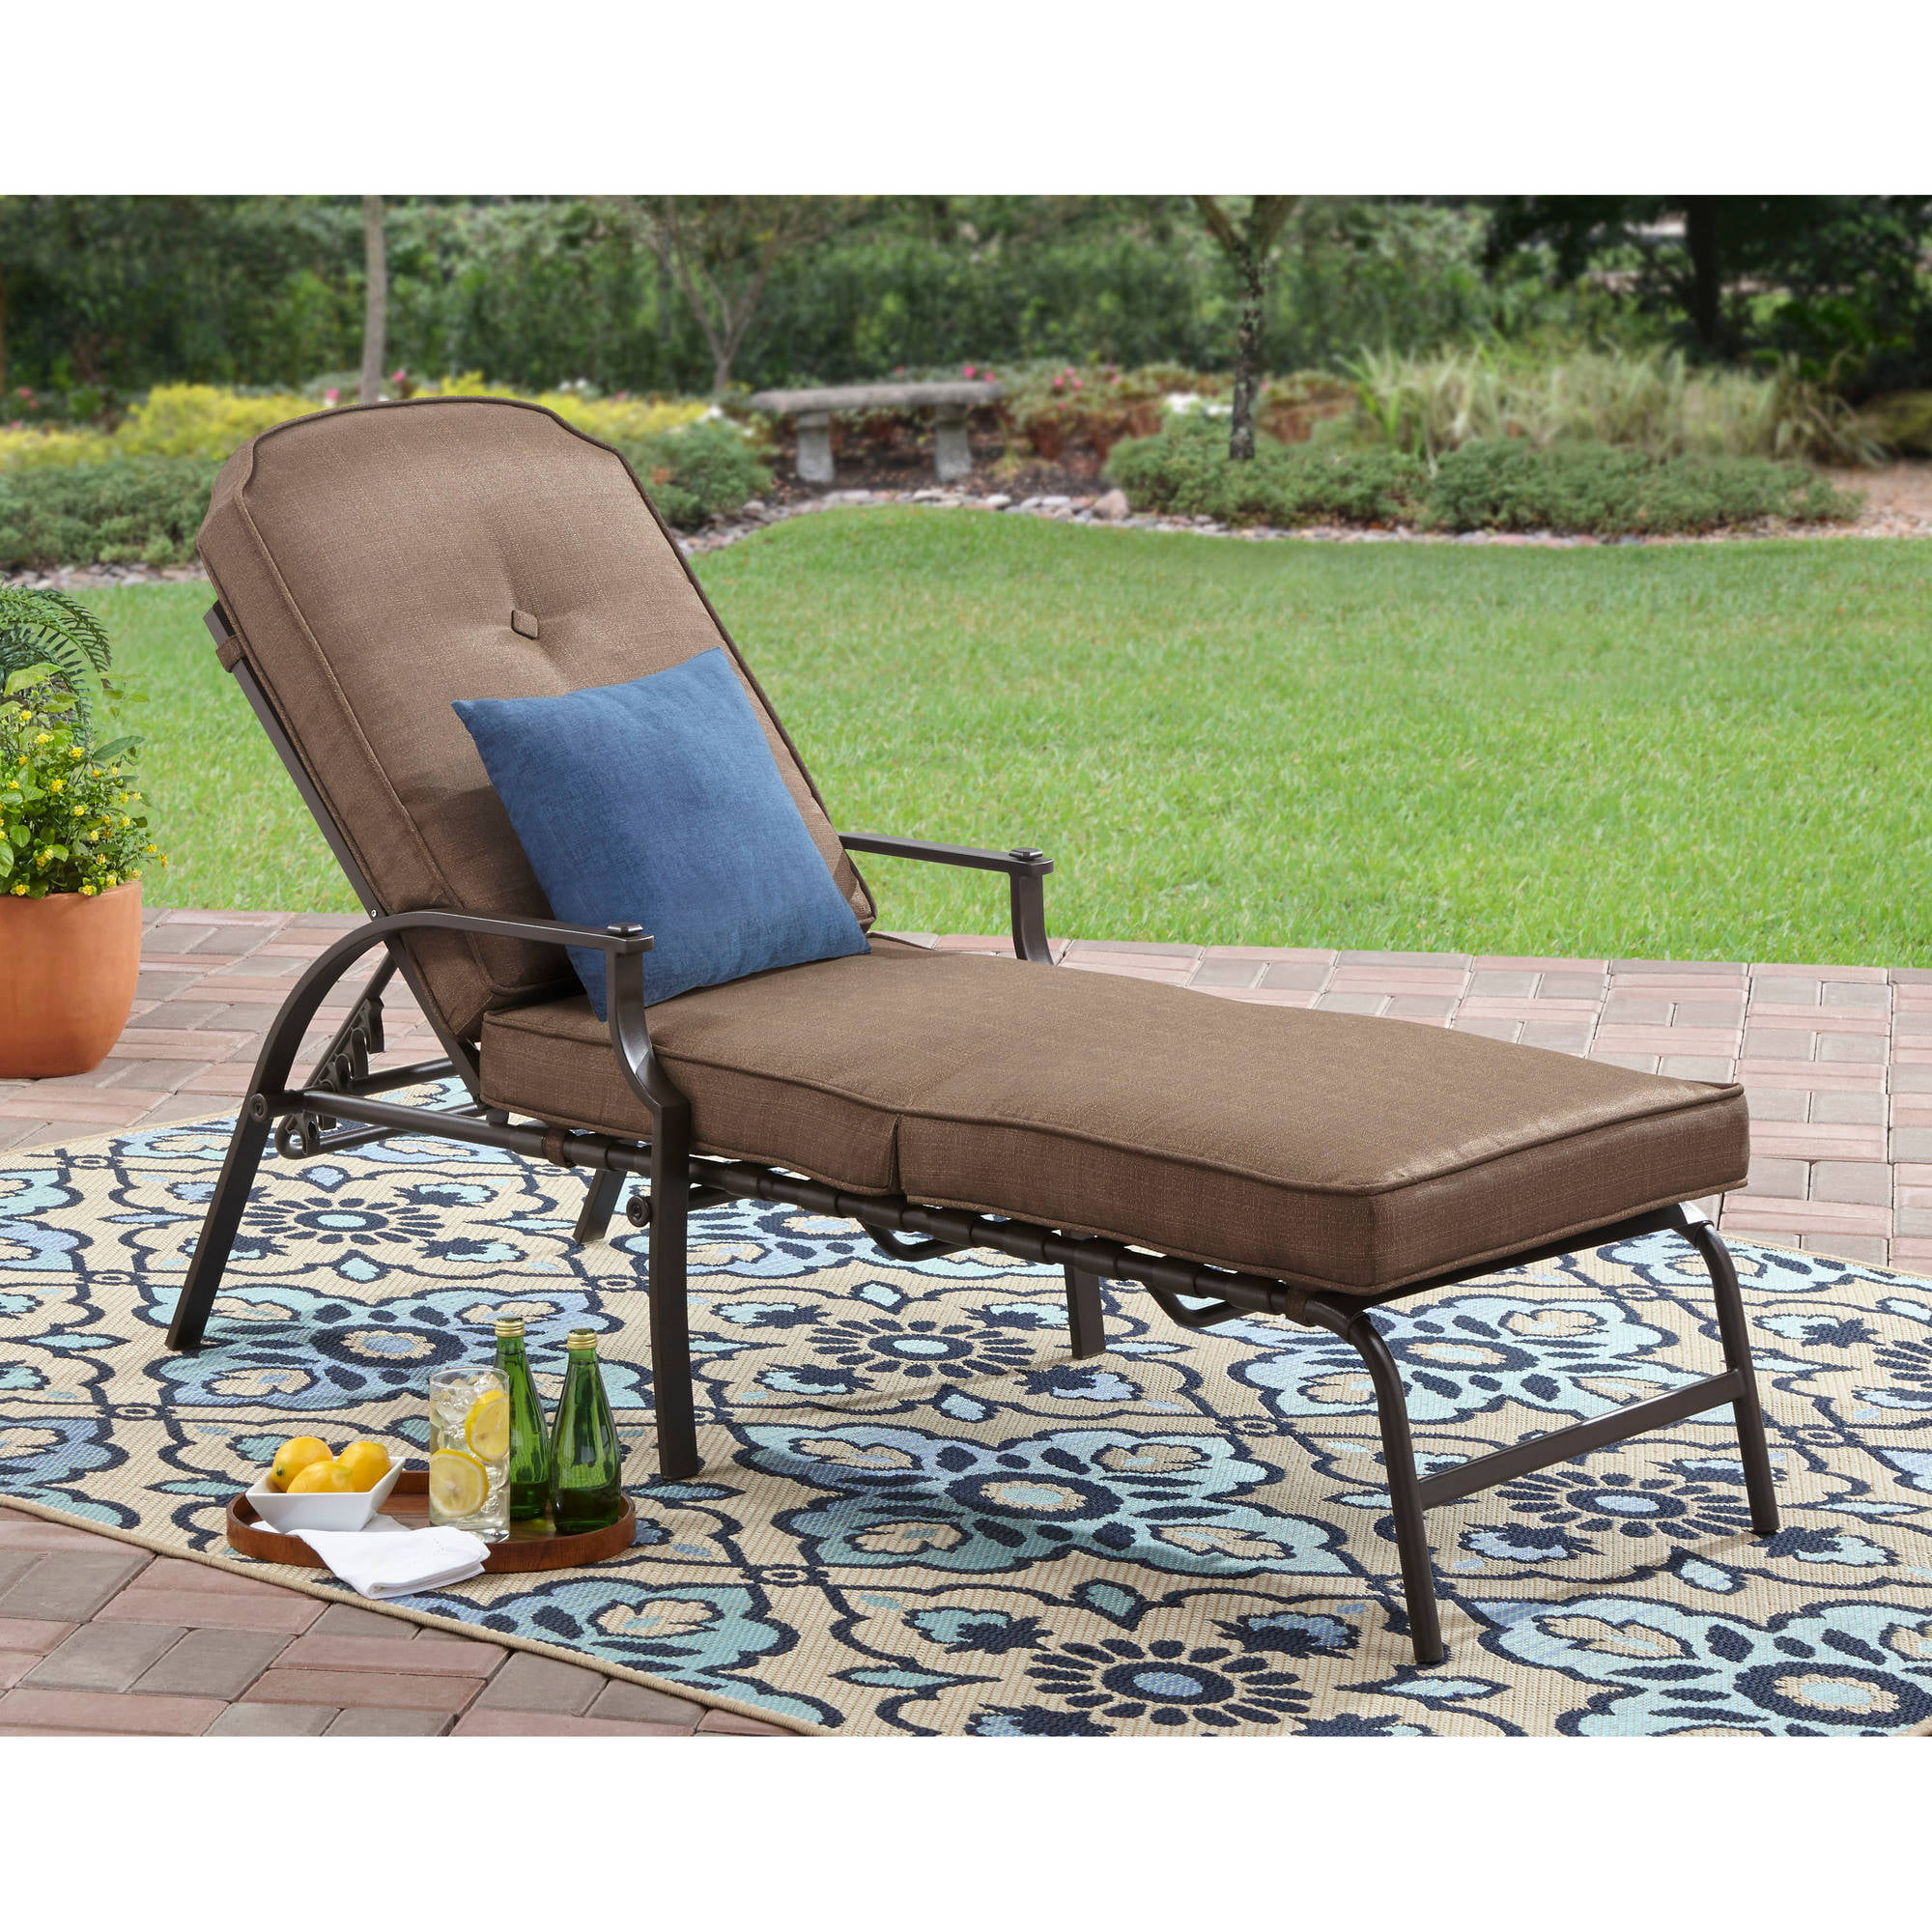 Baner Garden Adjustable Chaise Pool Lounge Chair   Walmart.com